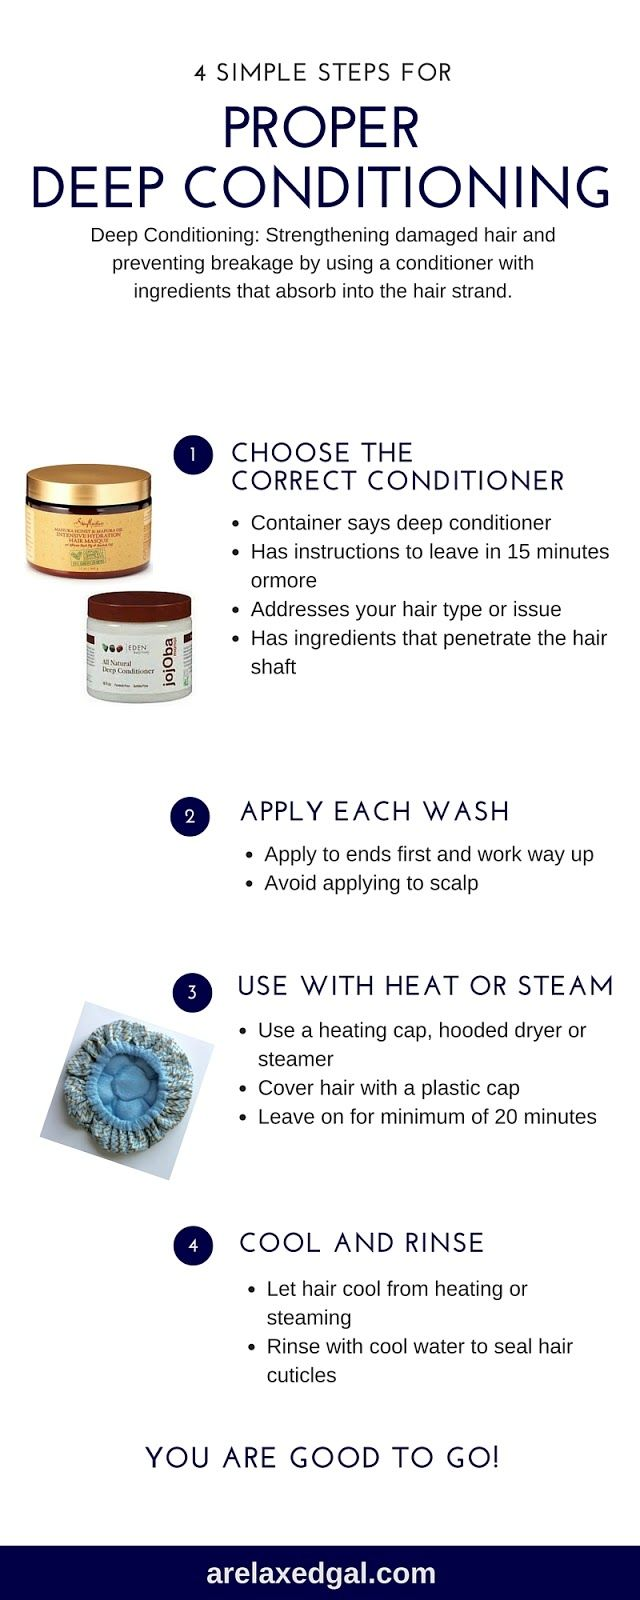 4 Simple Steps for Proper Deep Conditioning Infographic   arelaxedgal.com #relaxedhair #healthyhair #hairtip